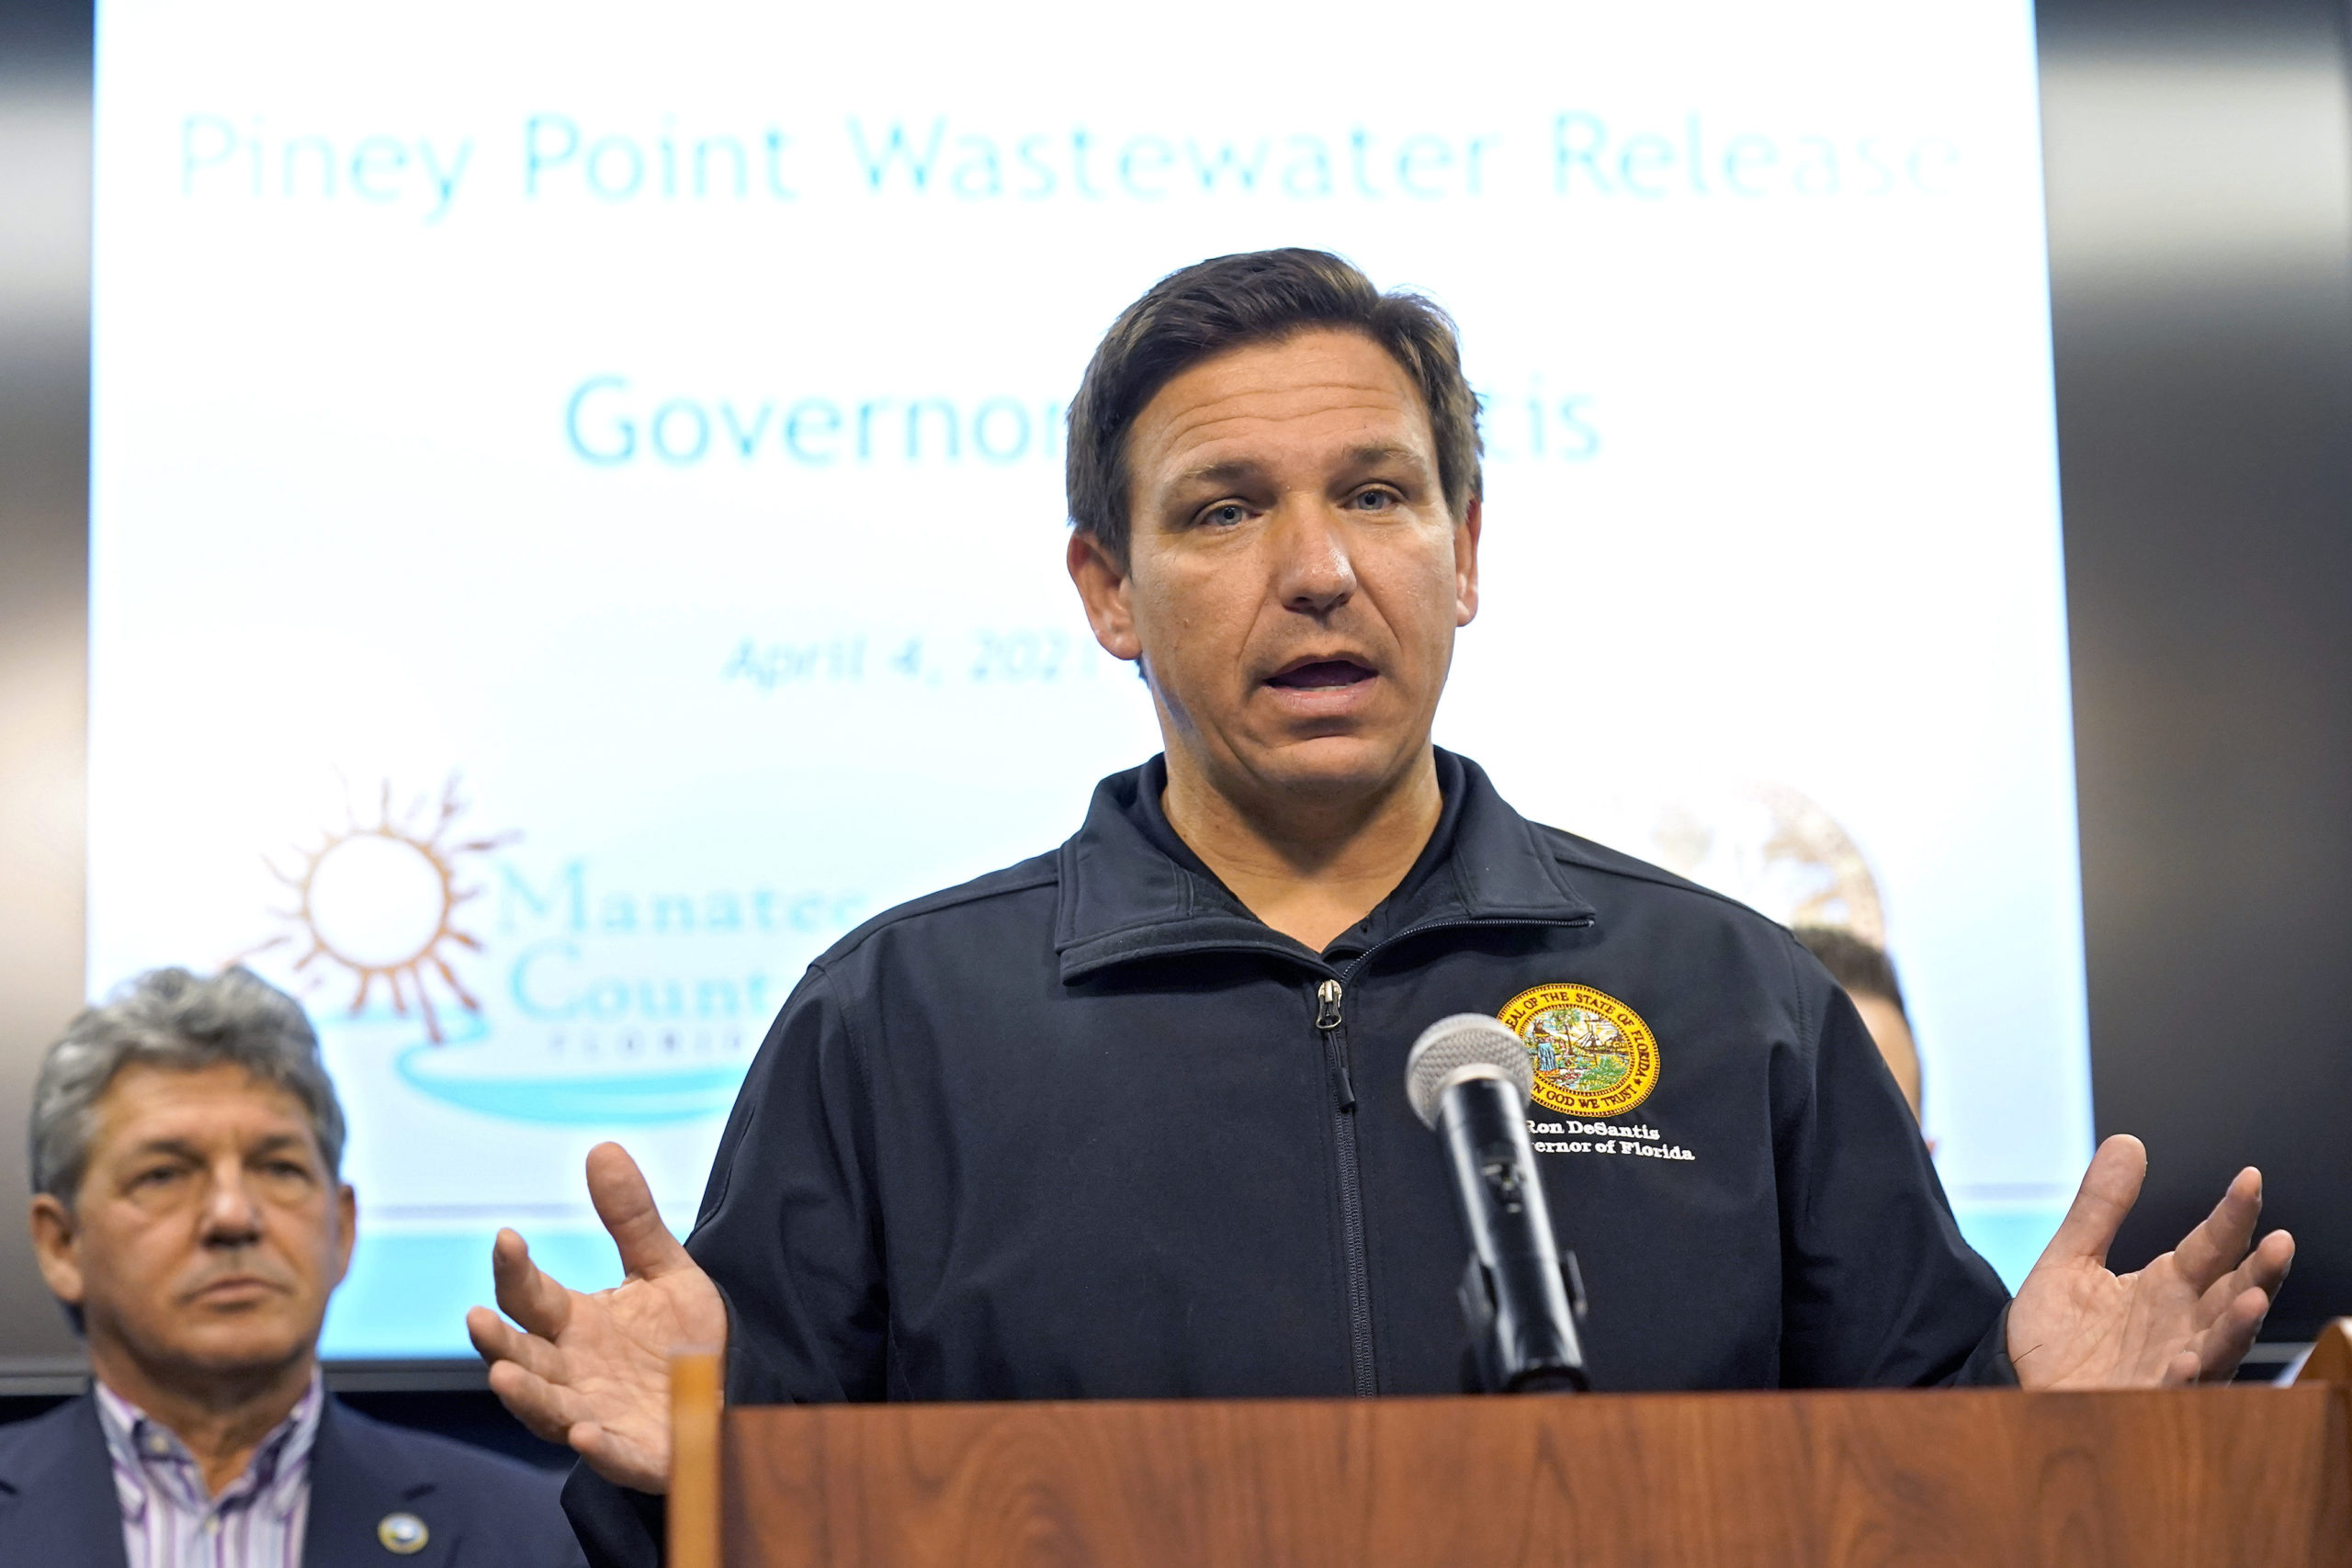 Florida Gov. Ron DeSantis gestures during an April 4 news conference at the Manatee County Emergency Management office in Palmetto, Florida.